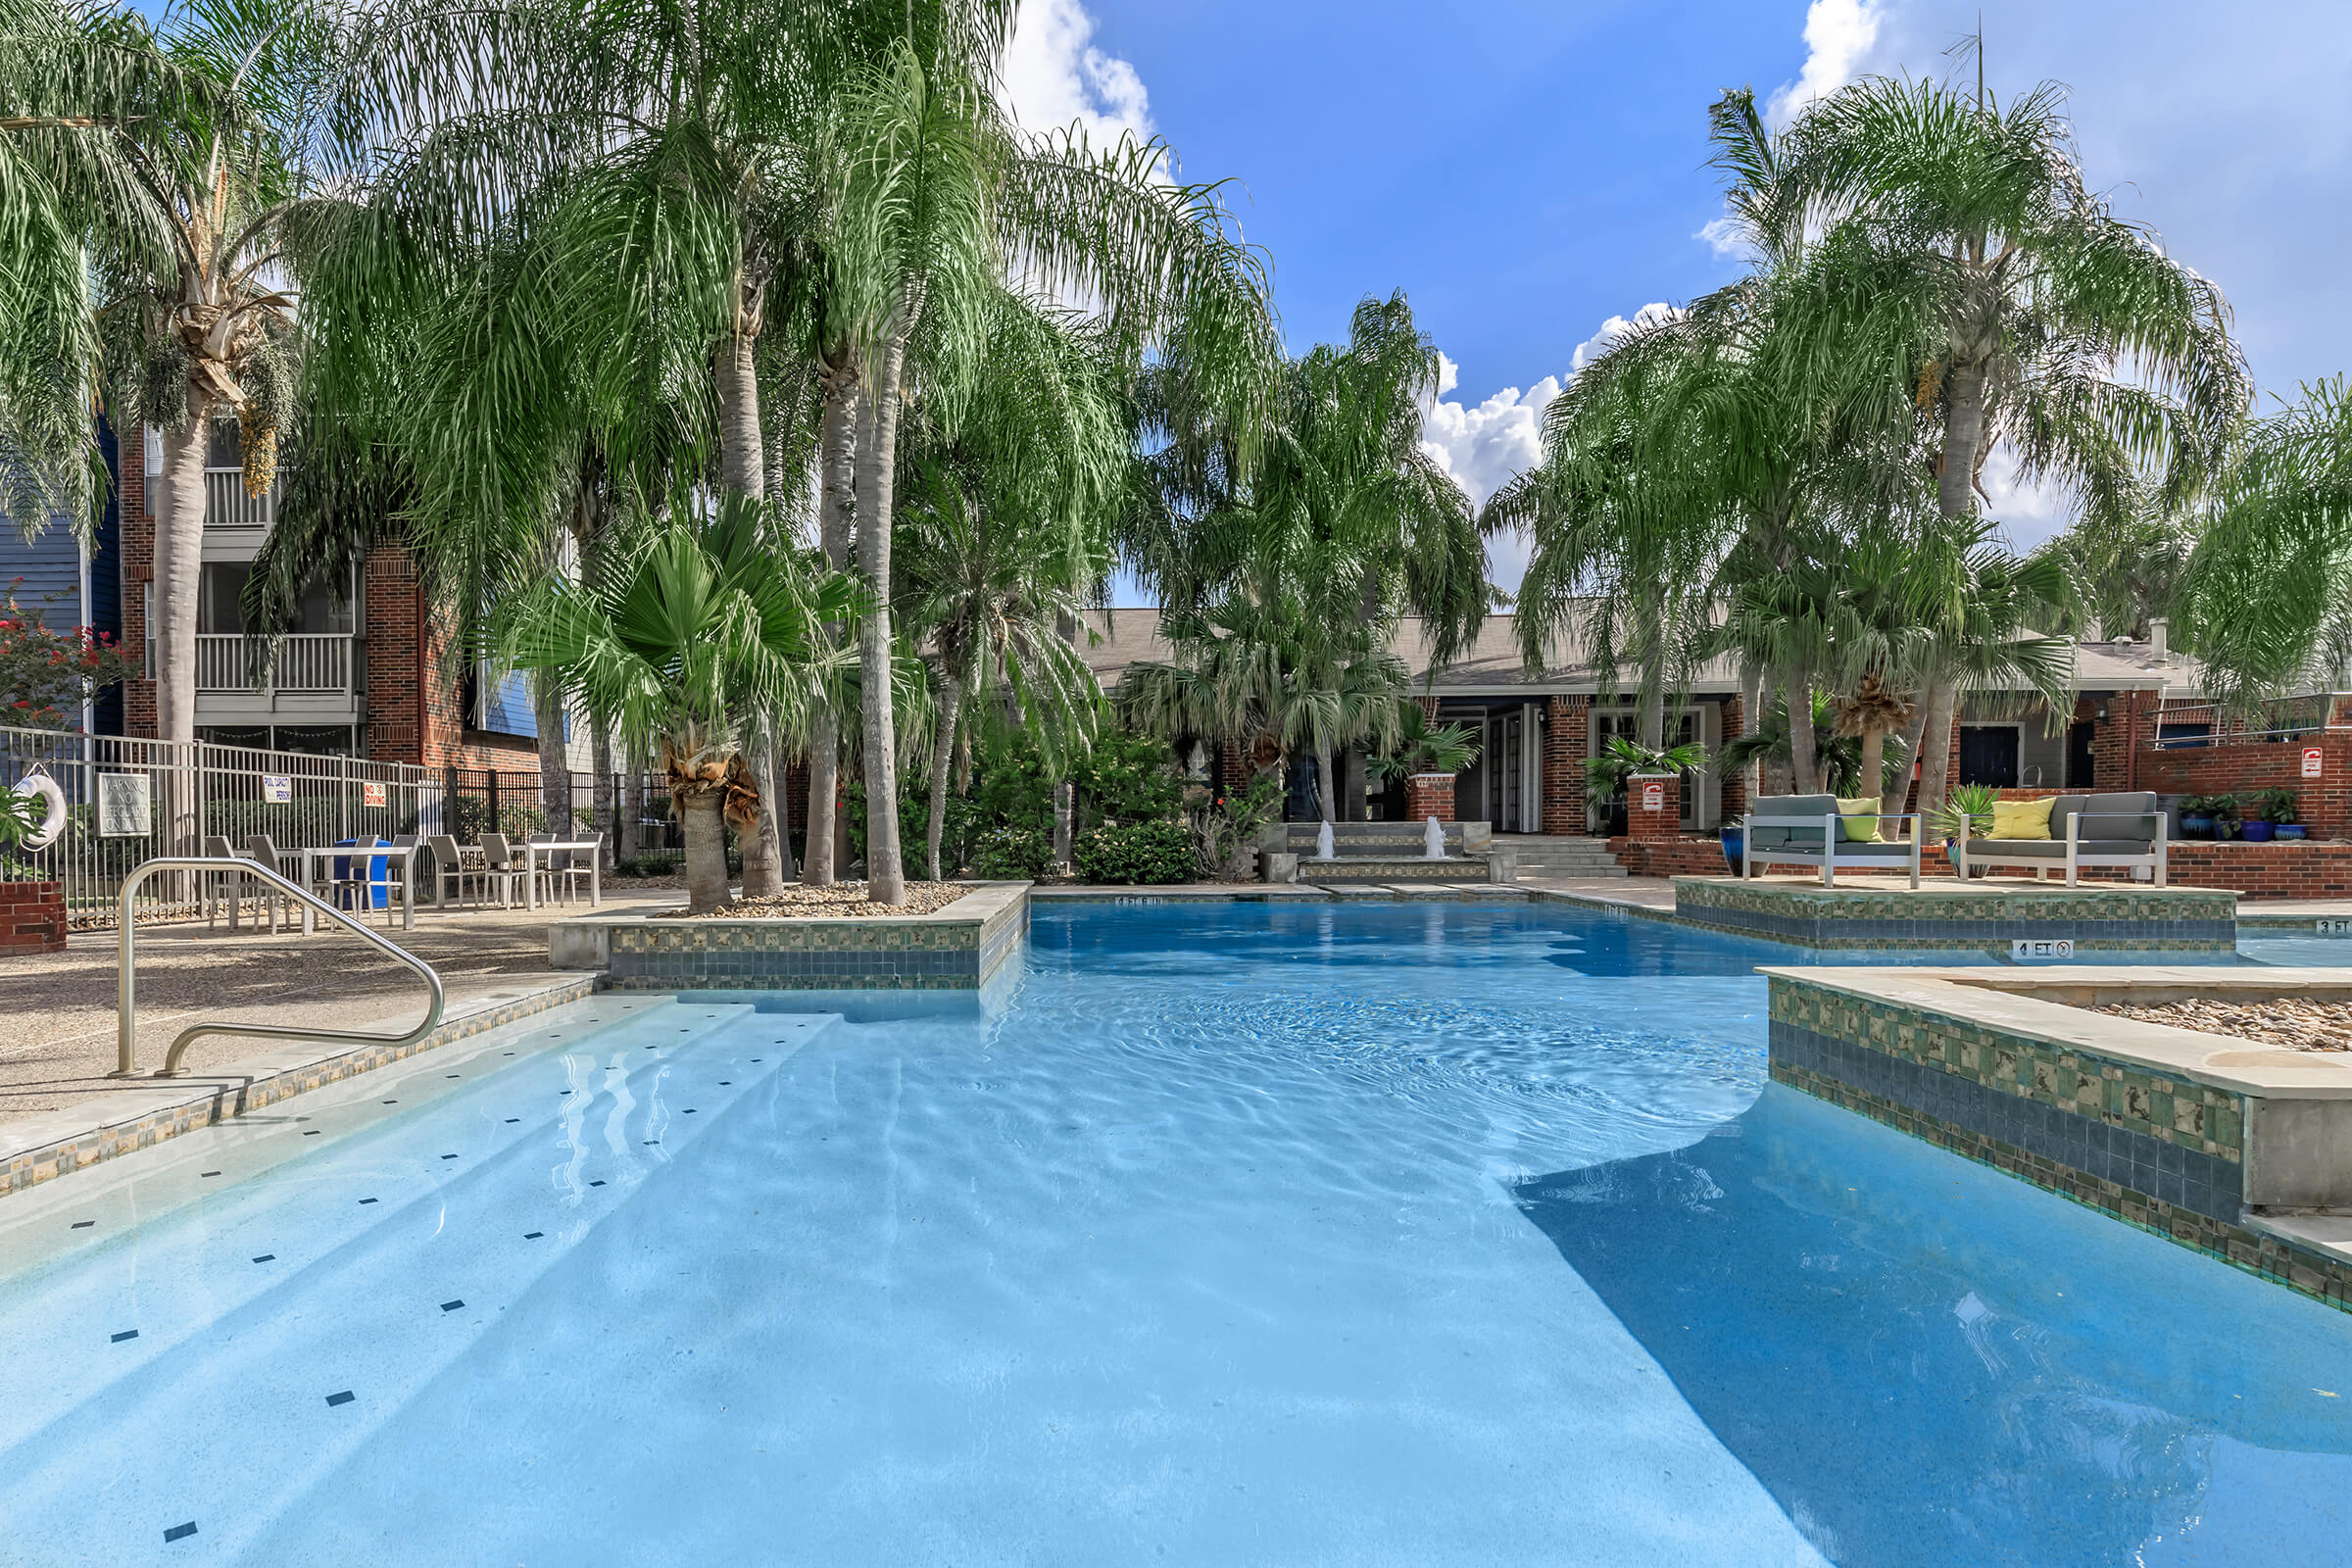 Picture of Sawgrass Apartments